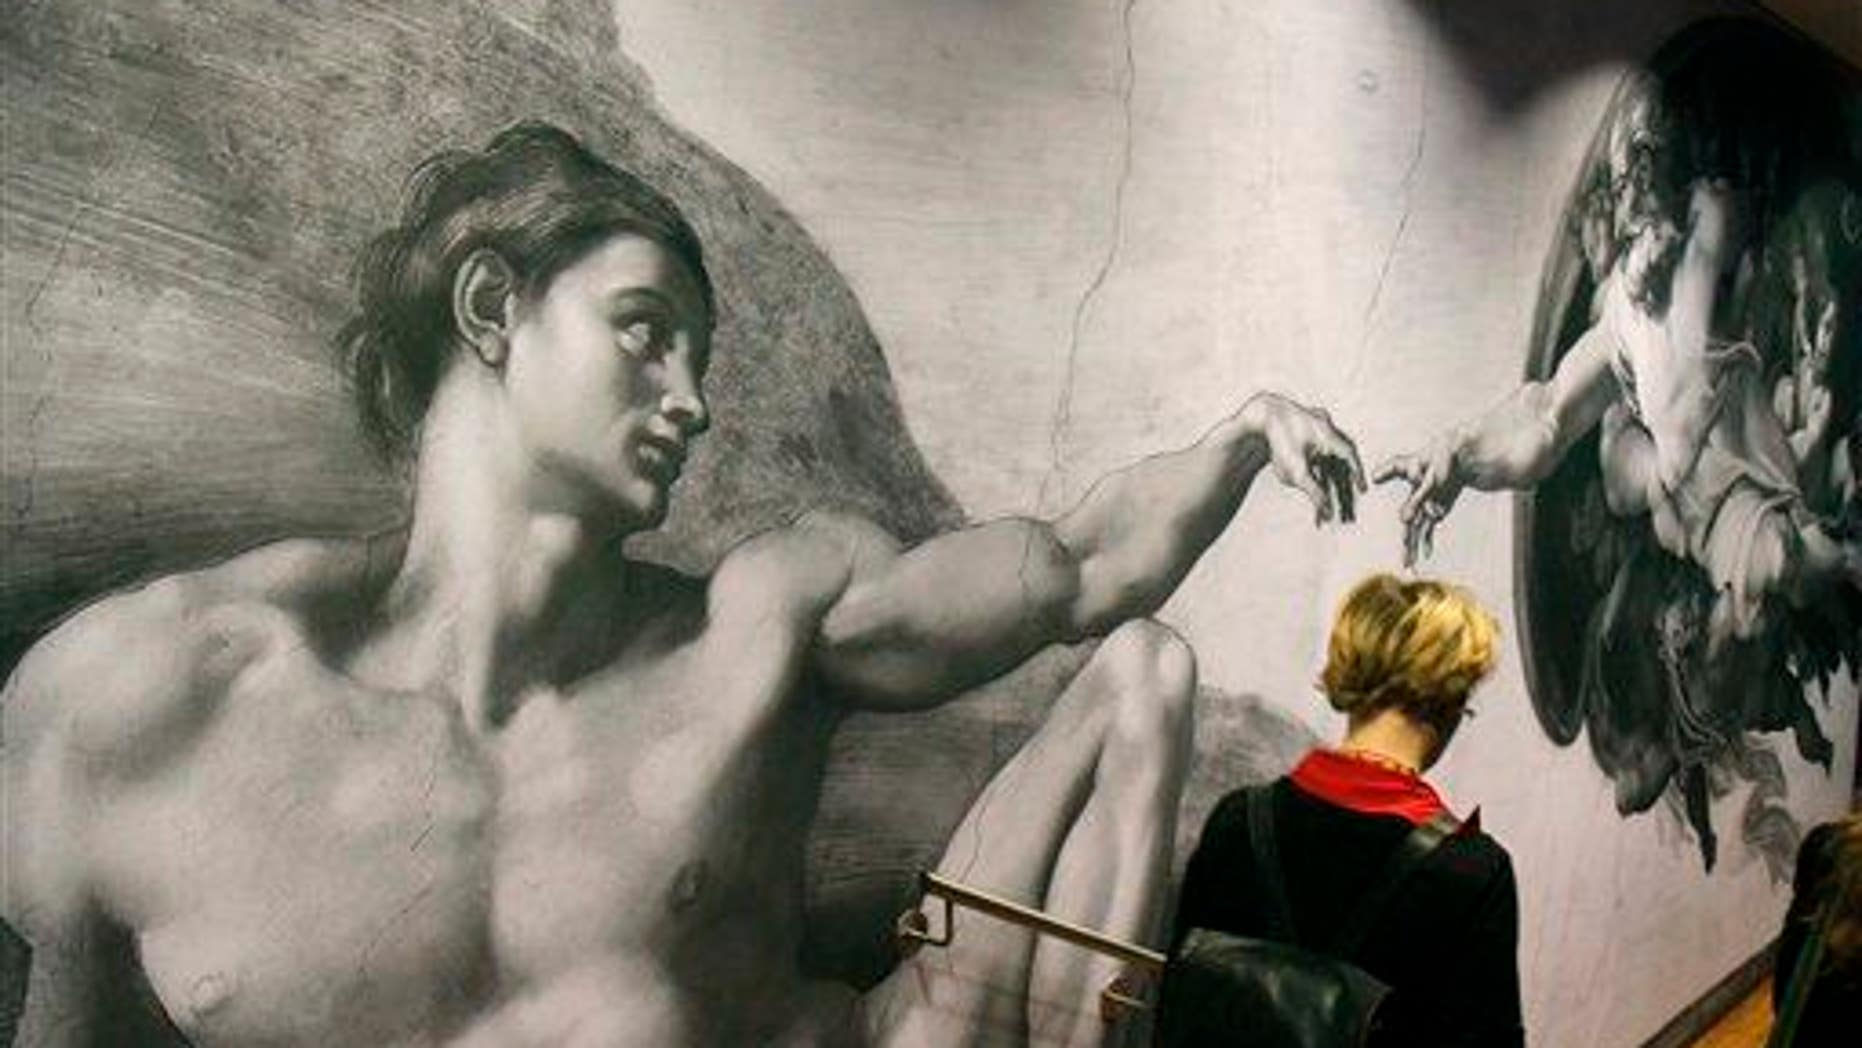 """A visitors passes a poster from the Sistine Chapel showing """"Creation of Adam"""" at the Albertina museum, in Vienna, Austria, on Wednesday, Oct. 6, 2010."""